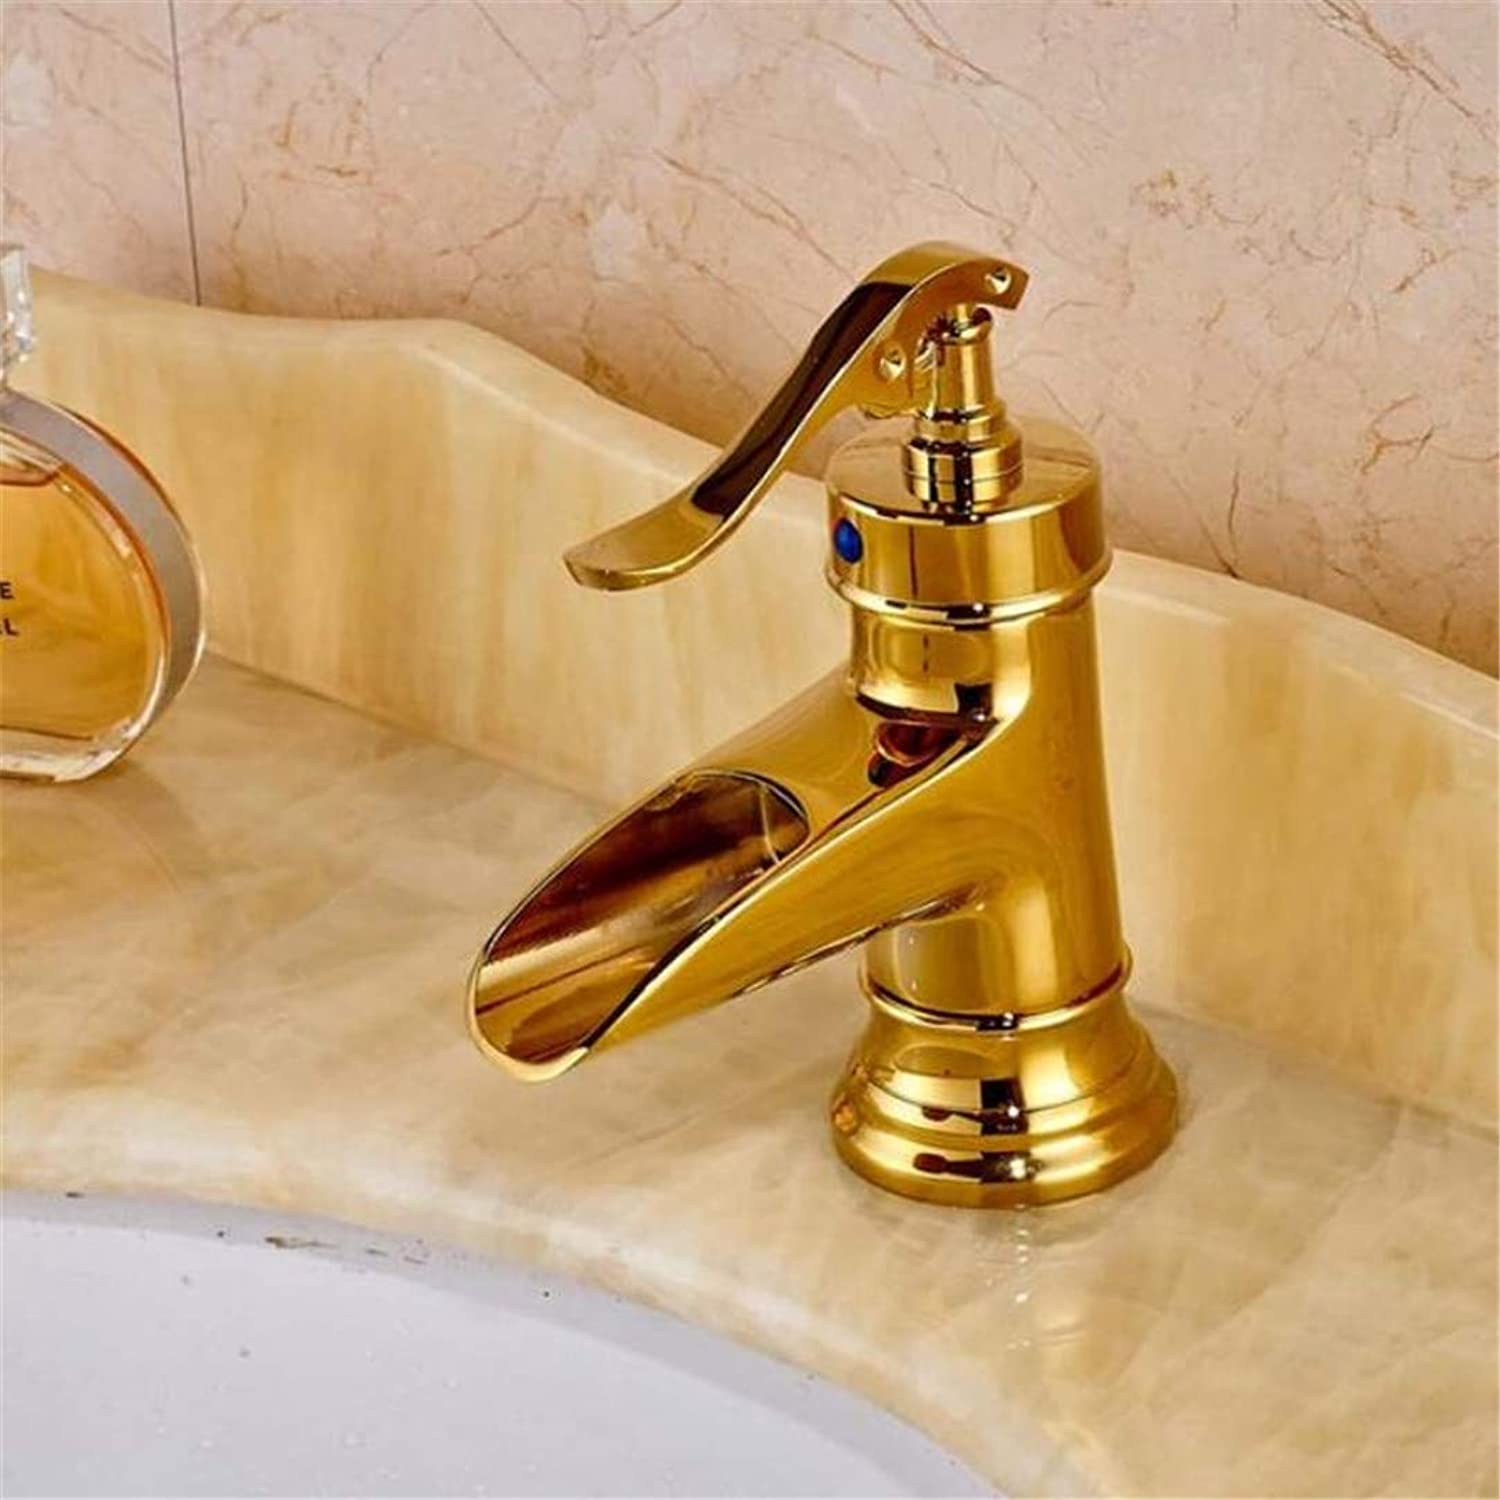 Faucet Washbasin Mixer Antique Brass Deck Mounted Basin Faucet Mixer Tap with Base Plate